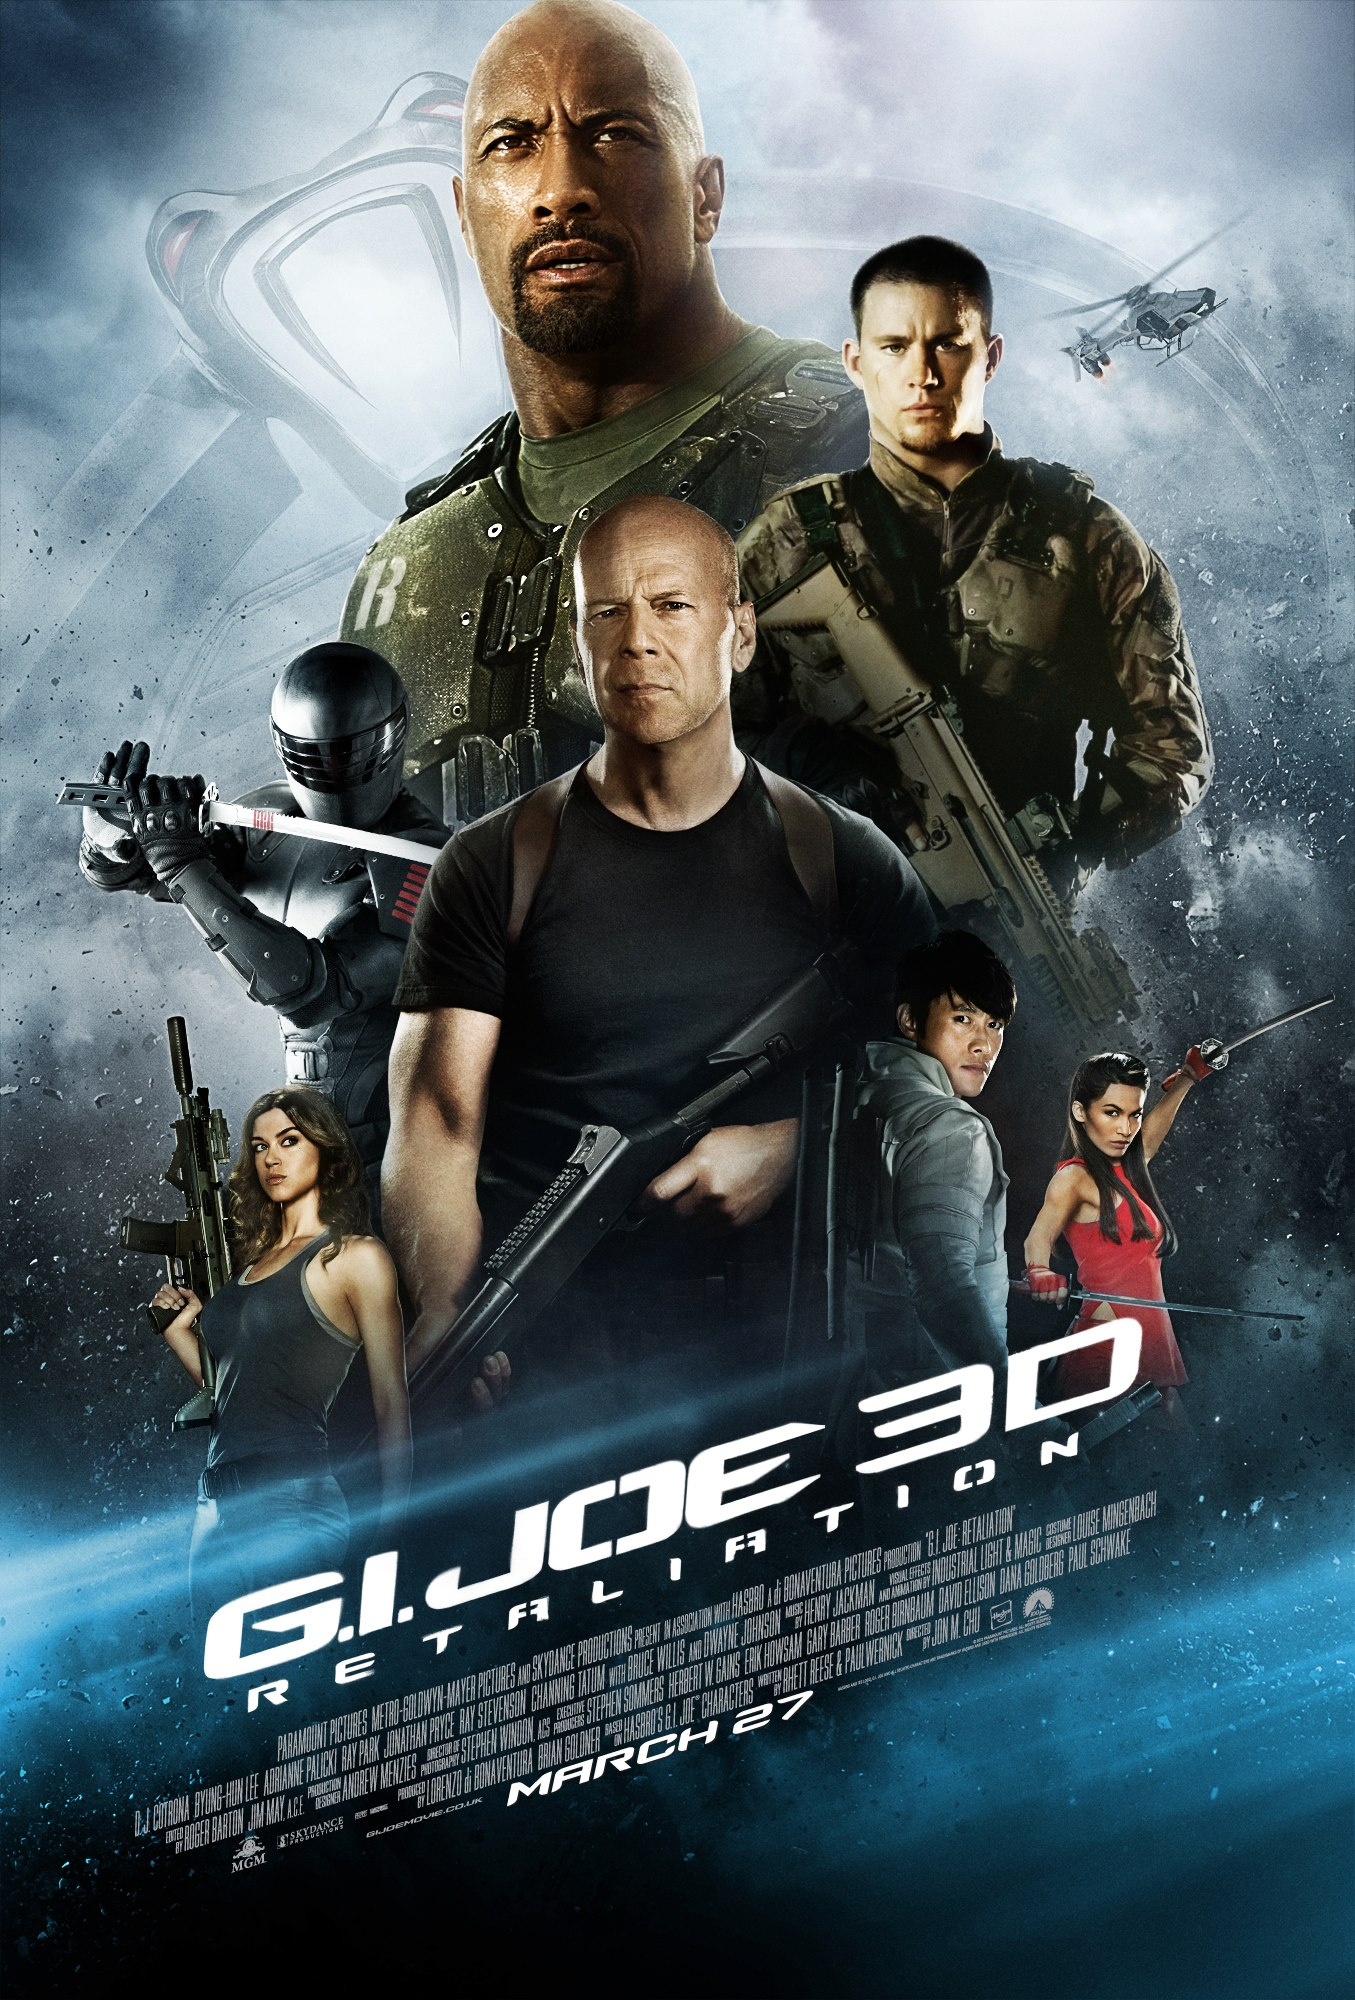 GI Joe Retaliation 3D Poster